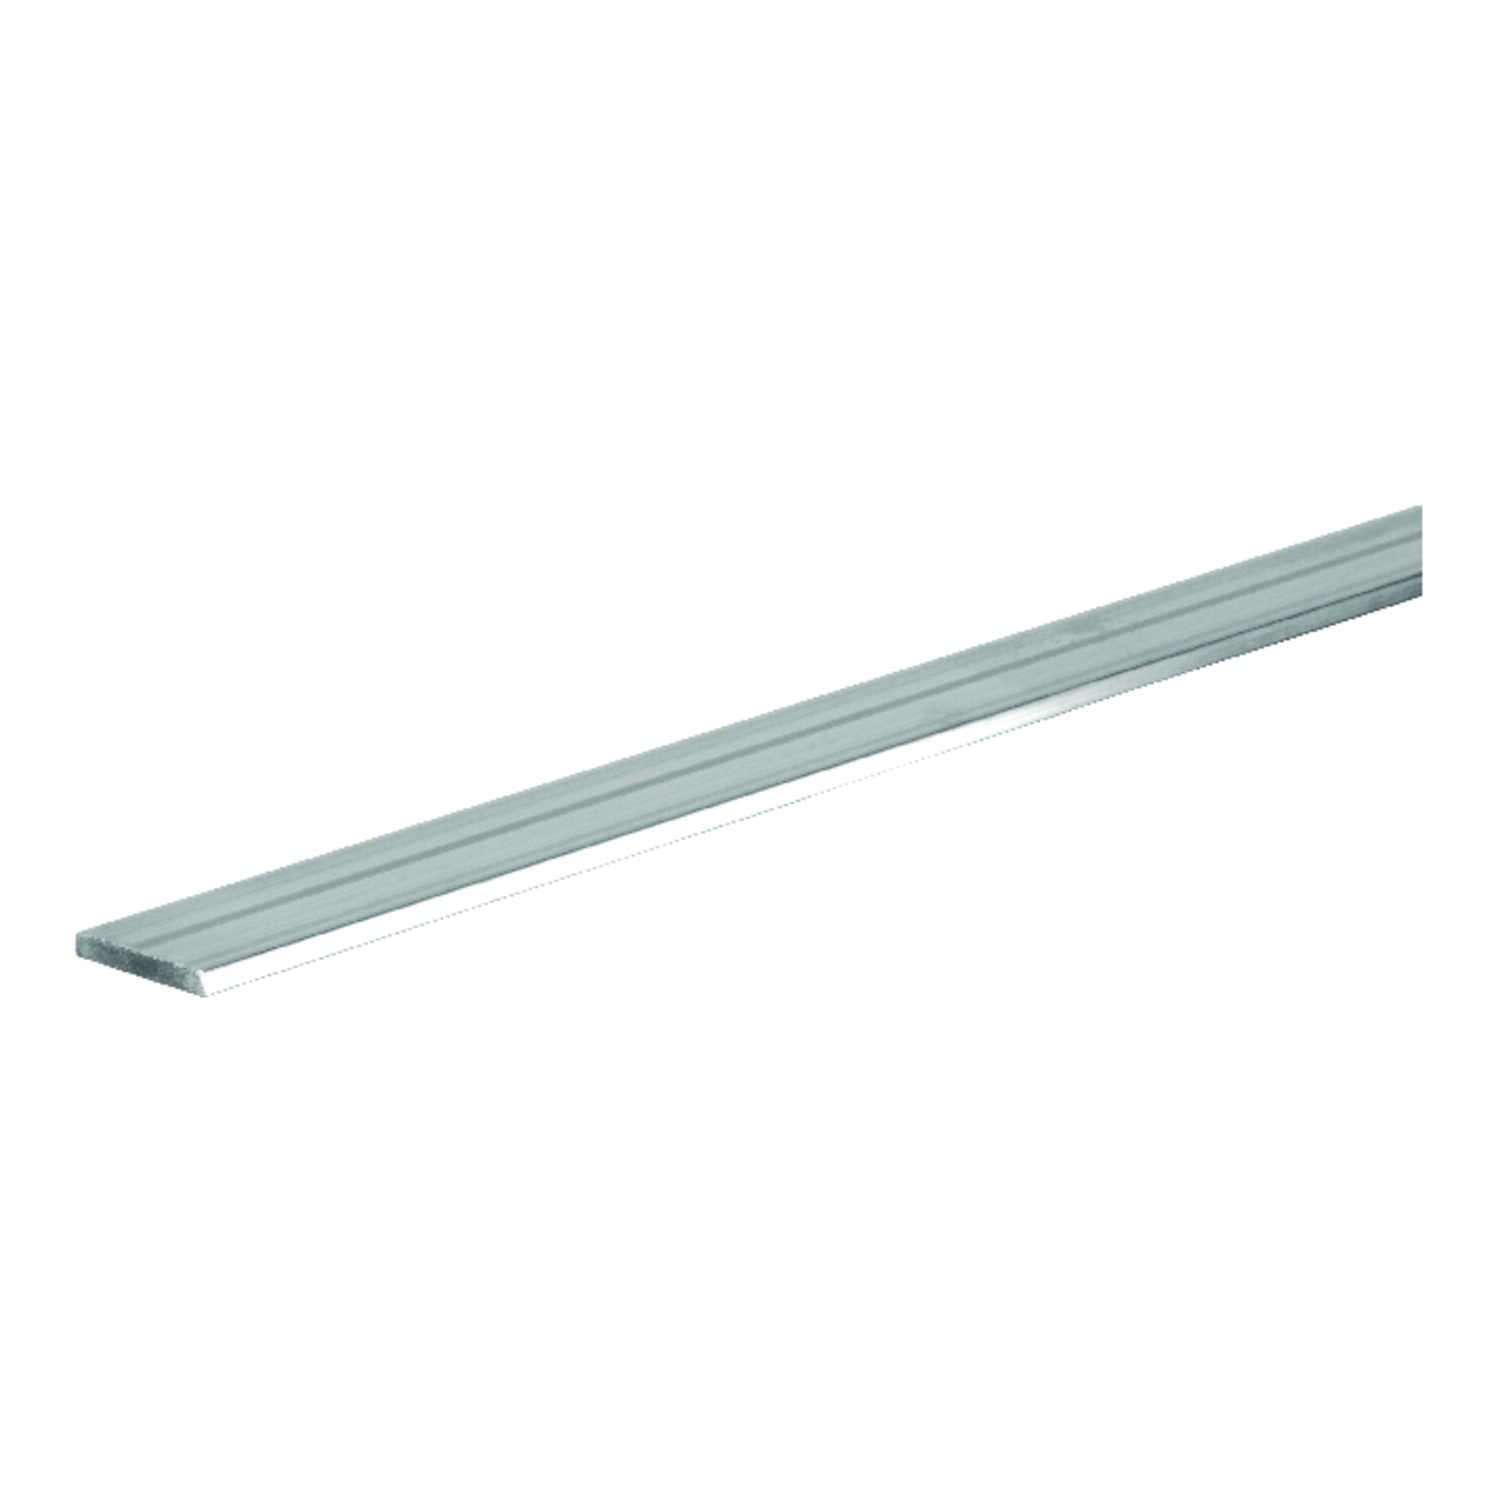 Boltmaster  0.0625 in.  x 1.5 in. W x 8 ft. L Aluminum Flat Bar  5 pk Weldable